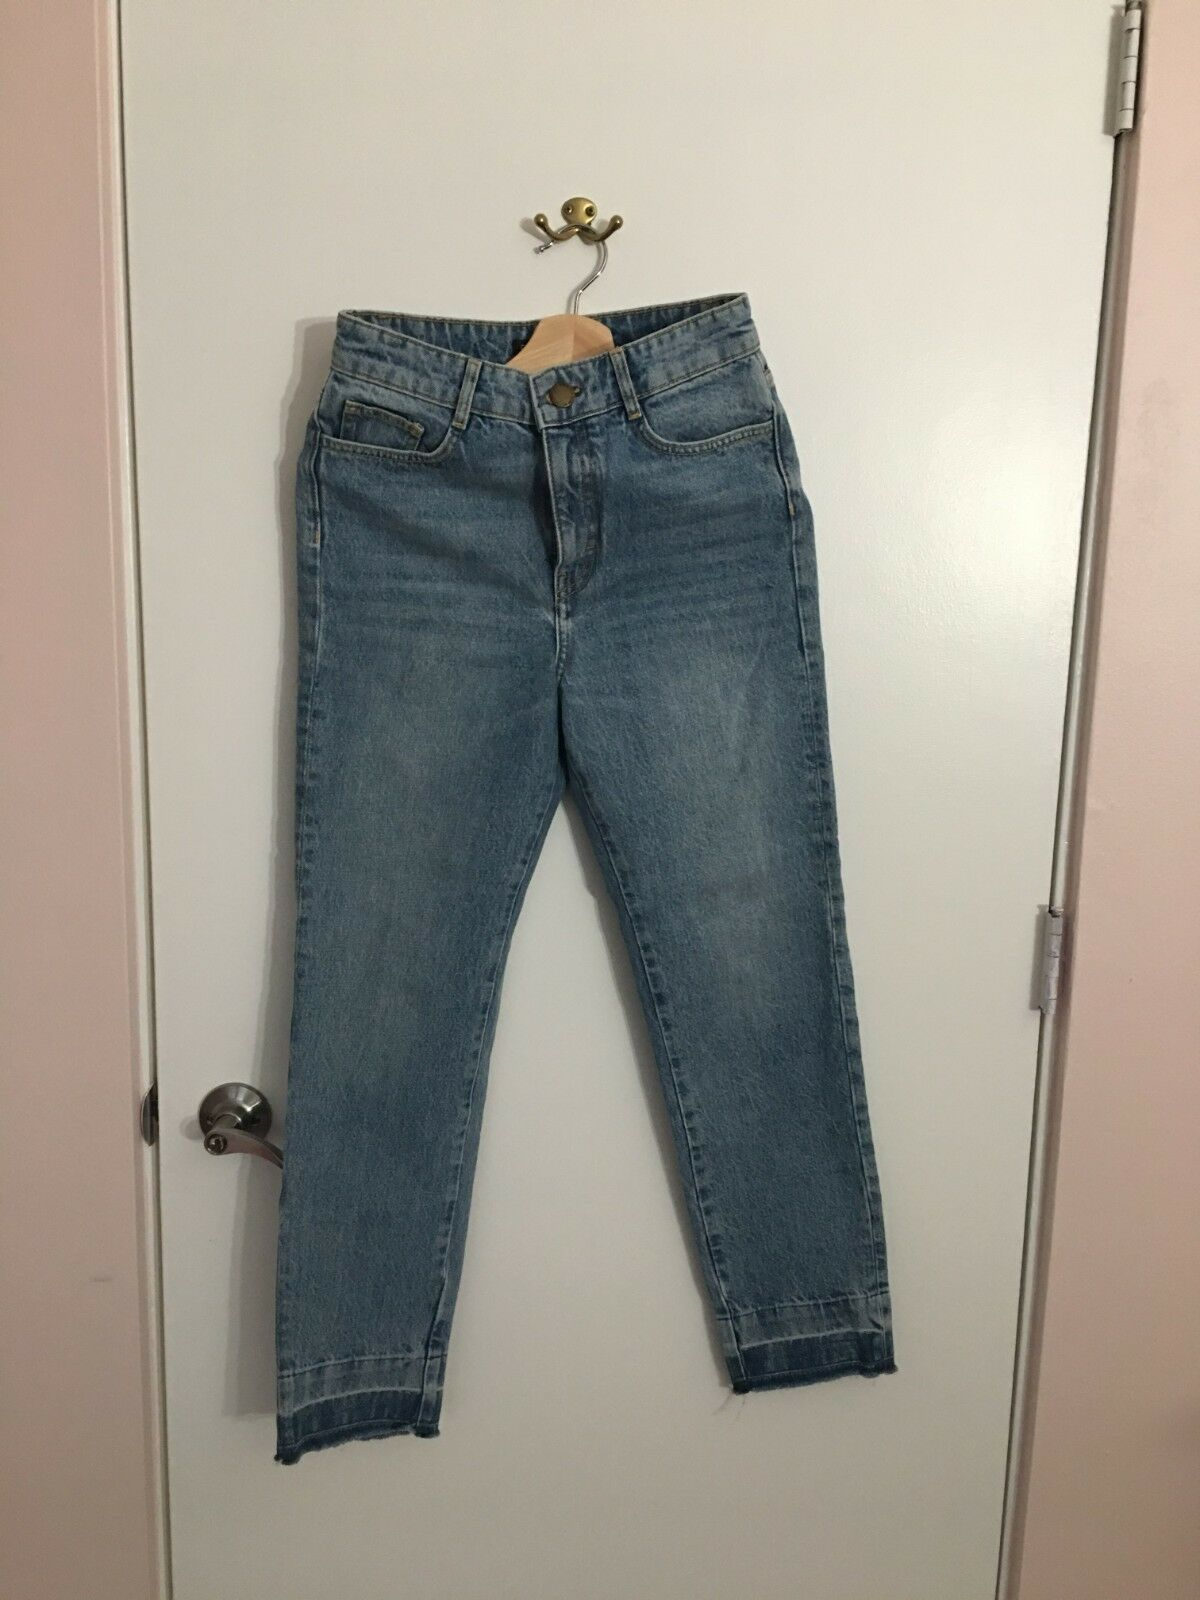 Maje's Women Vintage jeans, size 38 in EU, new with tag, never worn